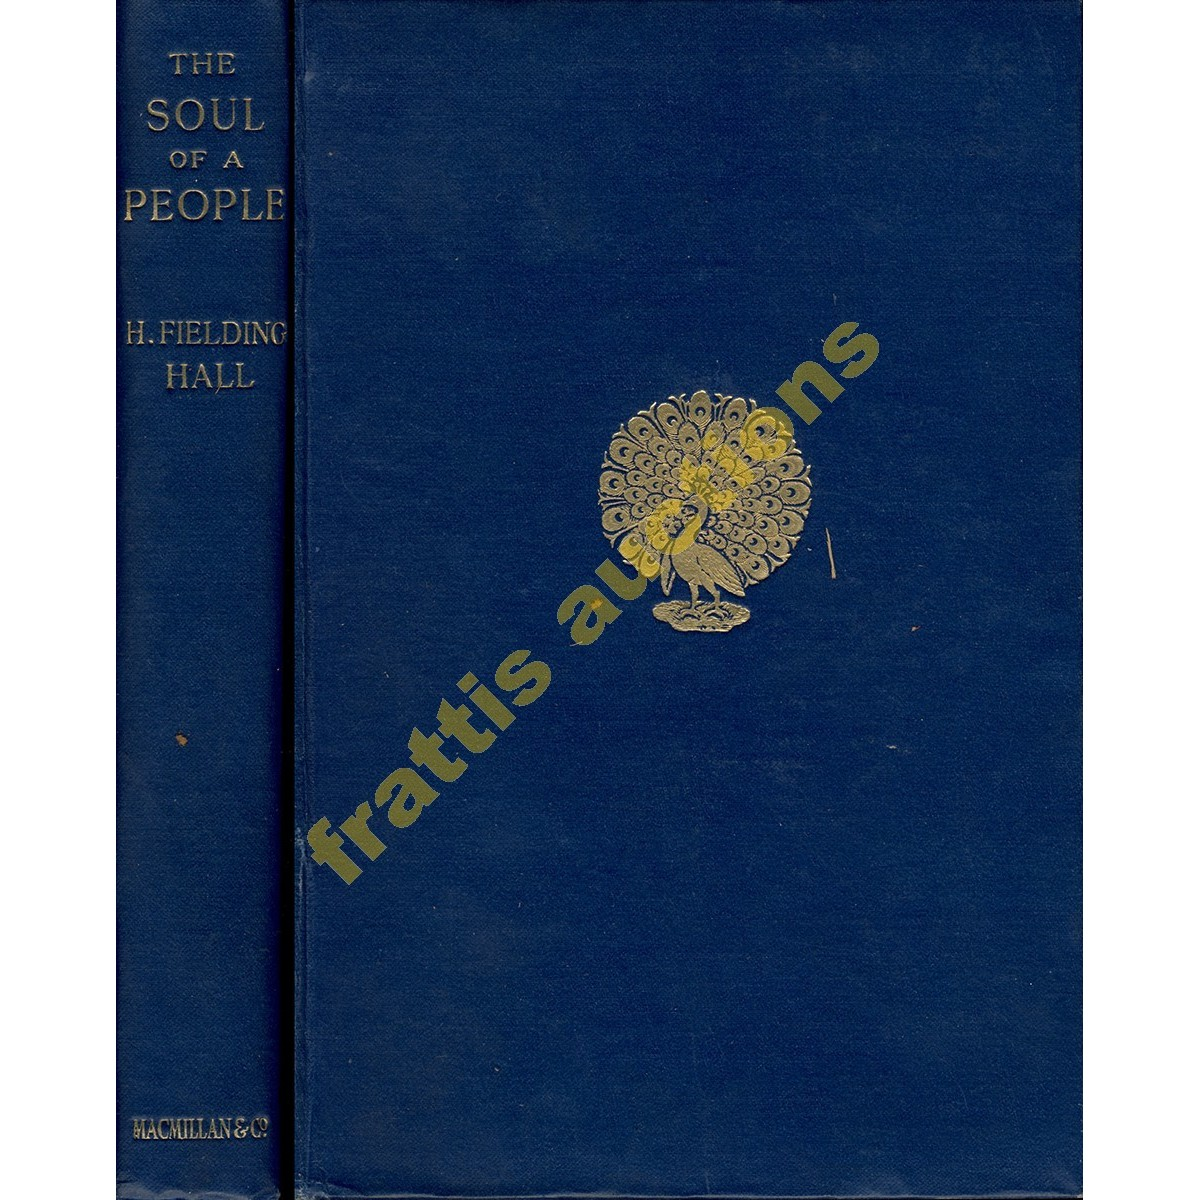 The soul of a people, H.Fielding hall